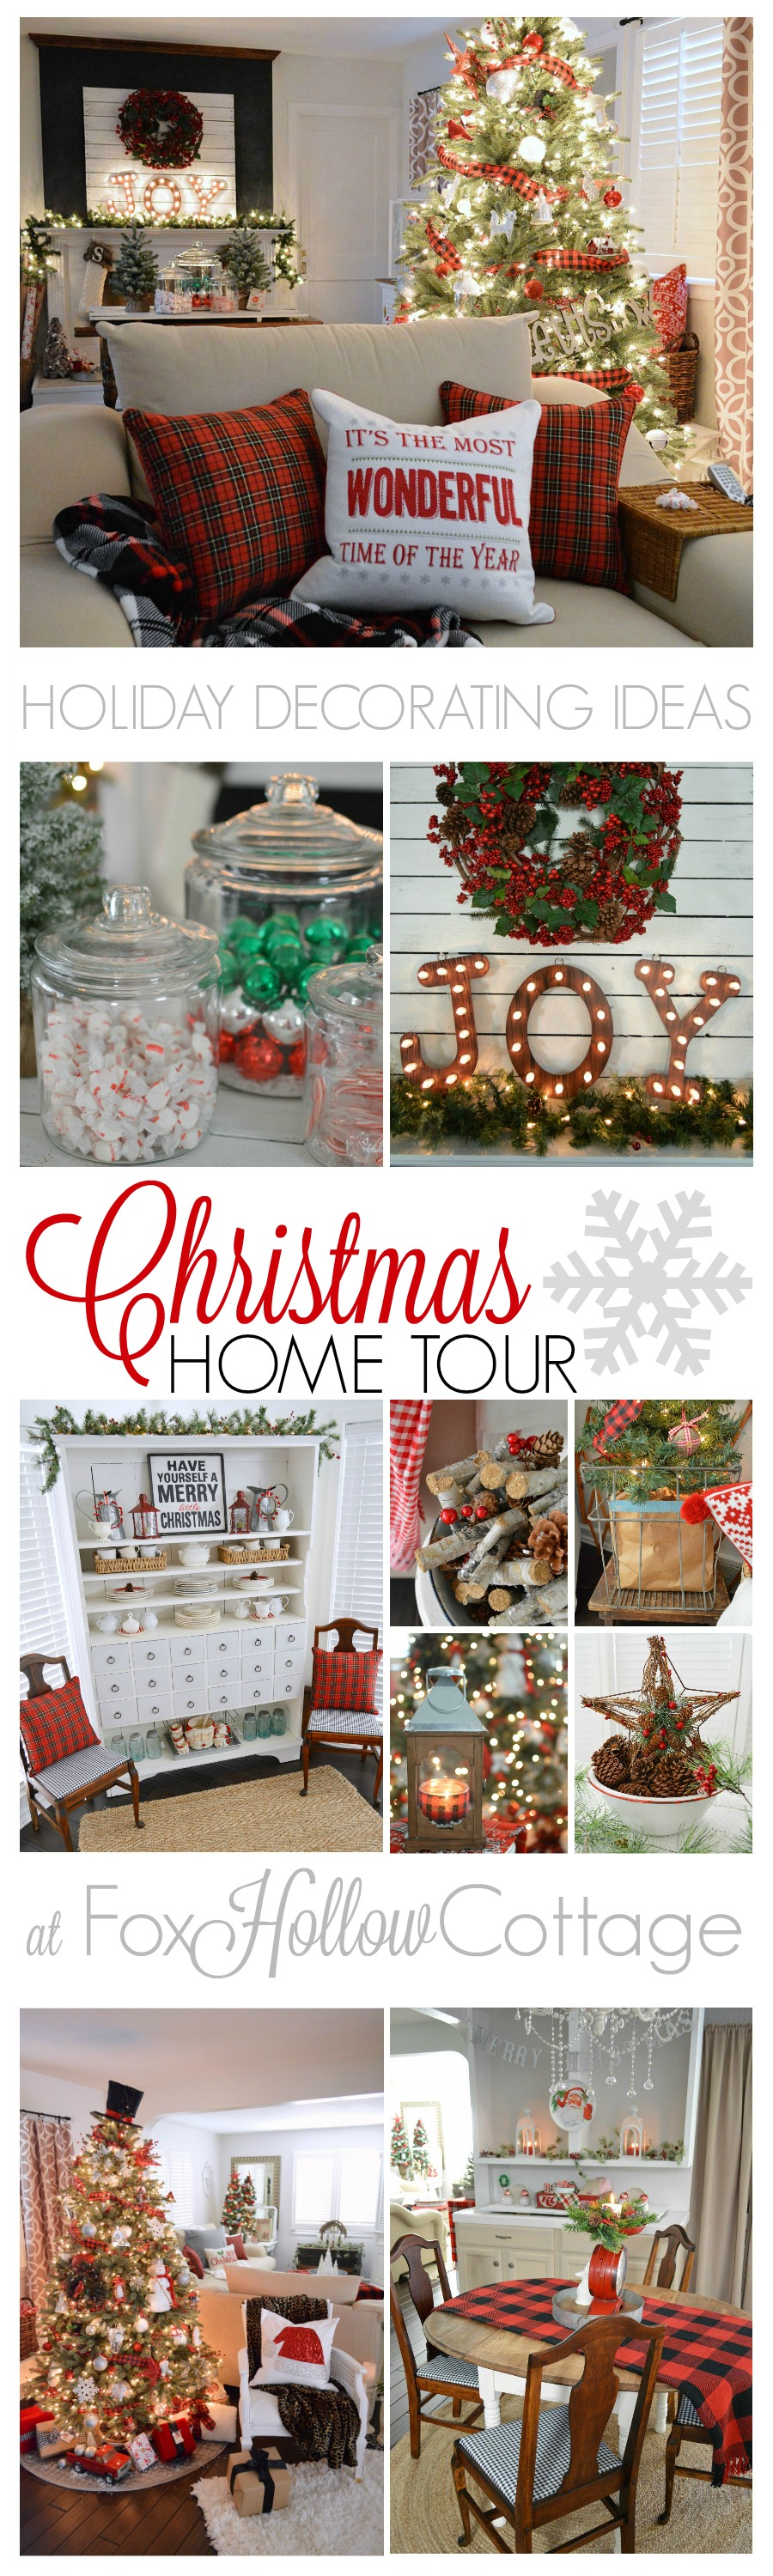 Happy Holiday Decorating Ideas from the Country Living Cherished Christmas Home Tour at Fox Hollow Cottage foxhollowcottage.com